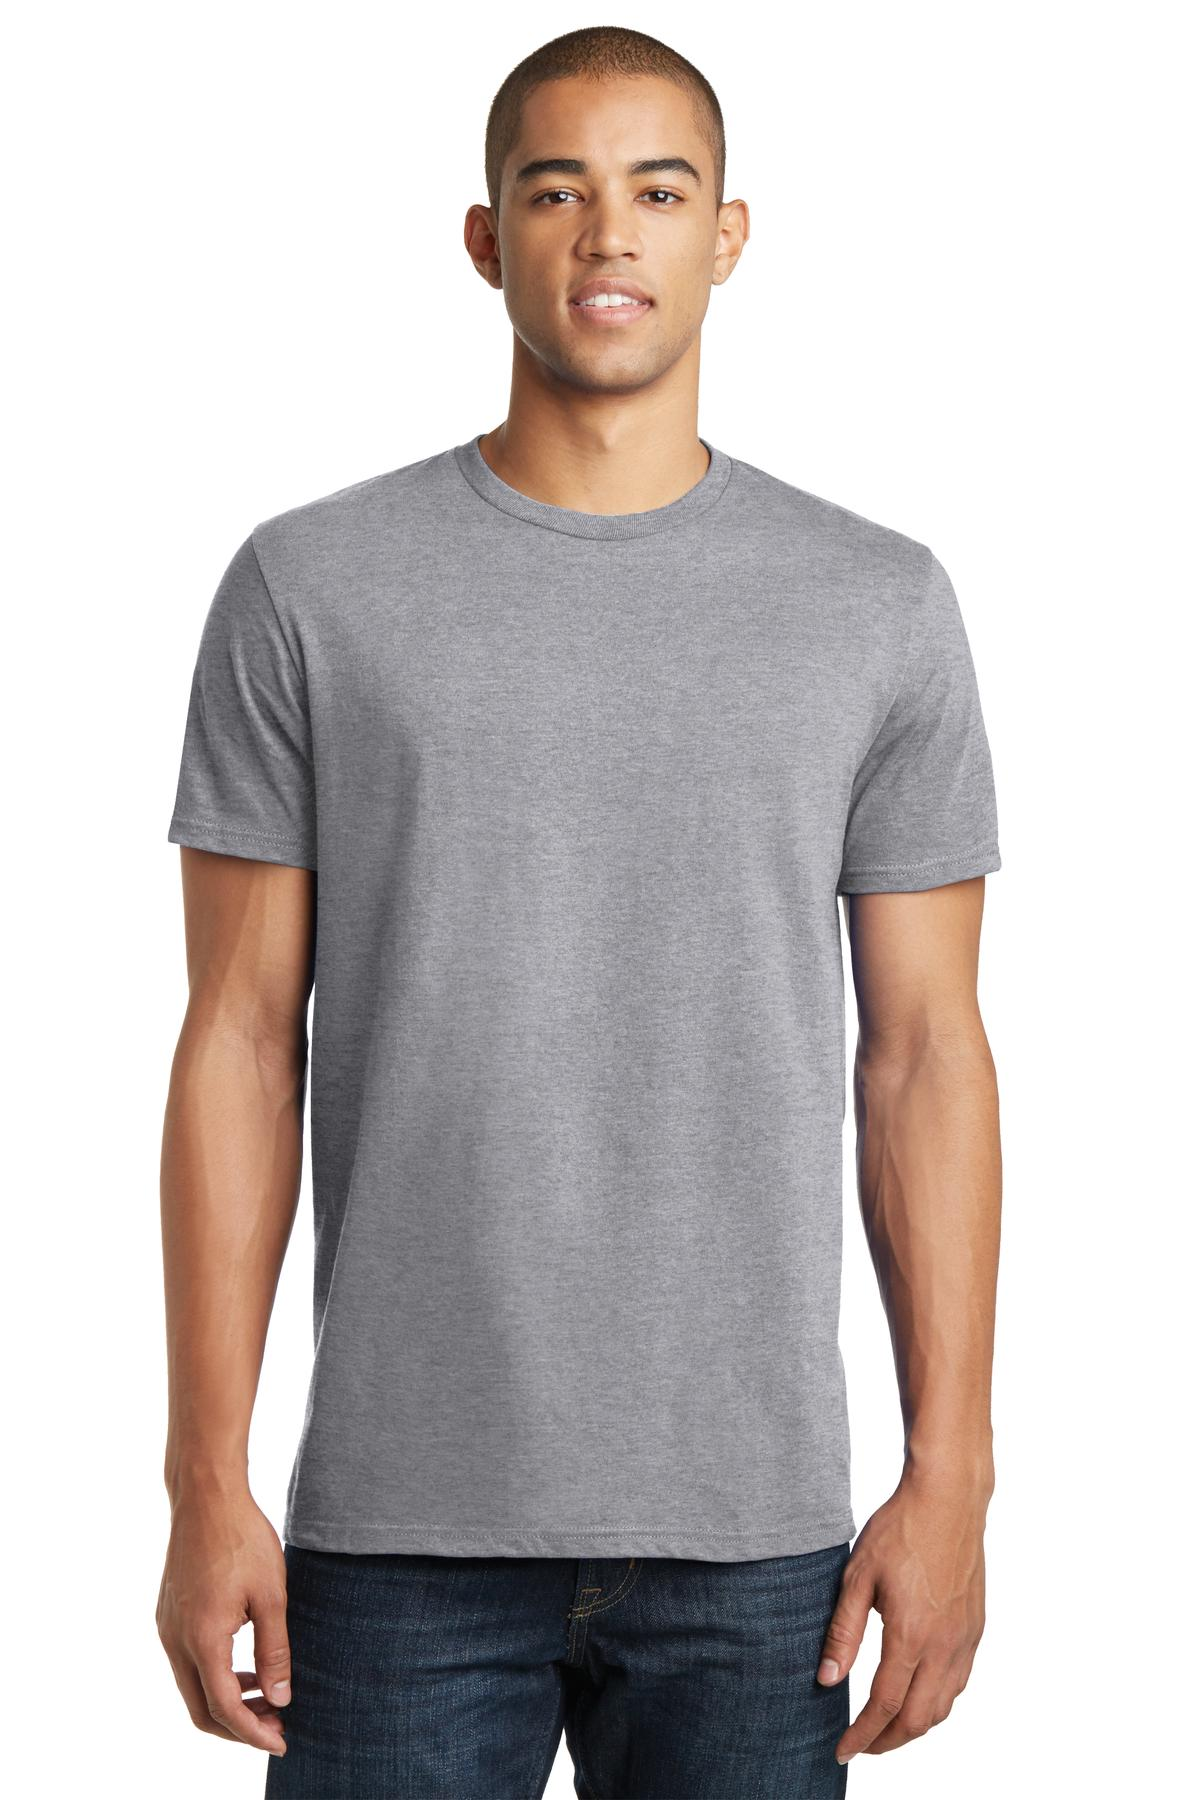 District ®  The Concert Tee ®  DT5000 - Heather Grey